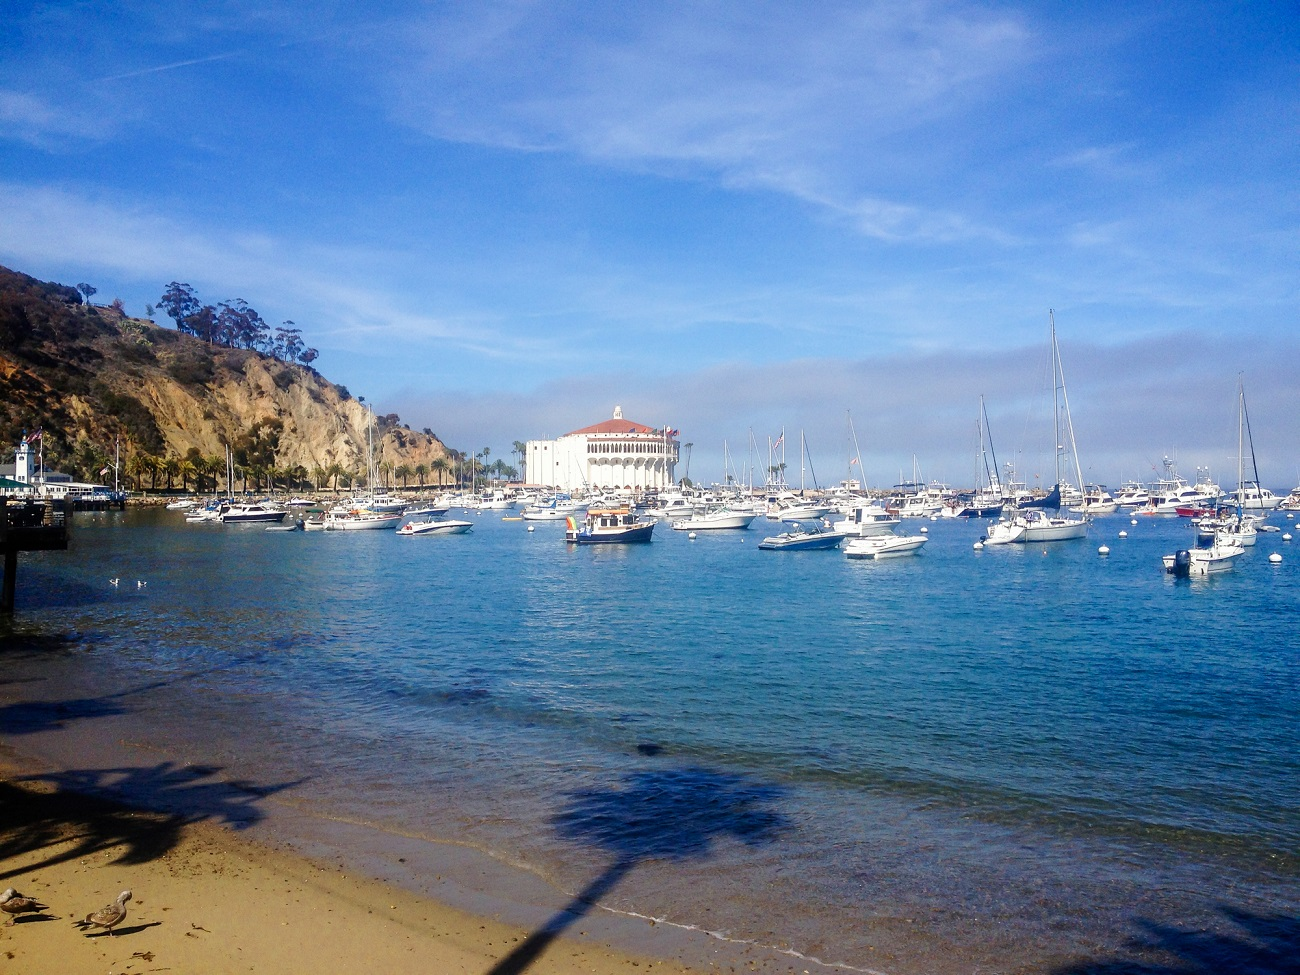 Catalina Island is one of the best swimming beaches in Southern California